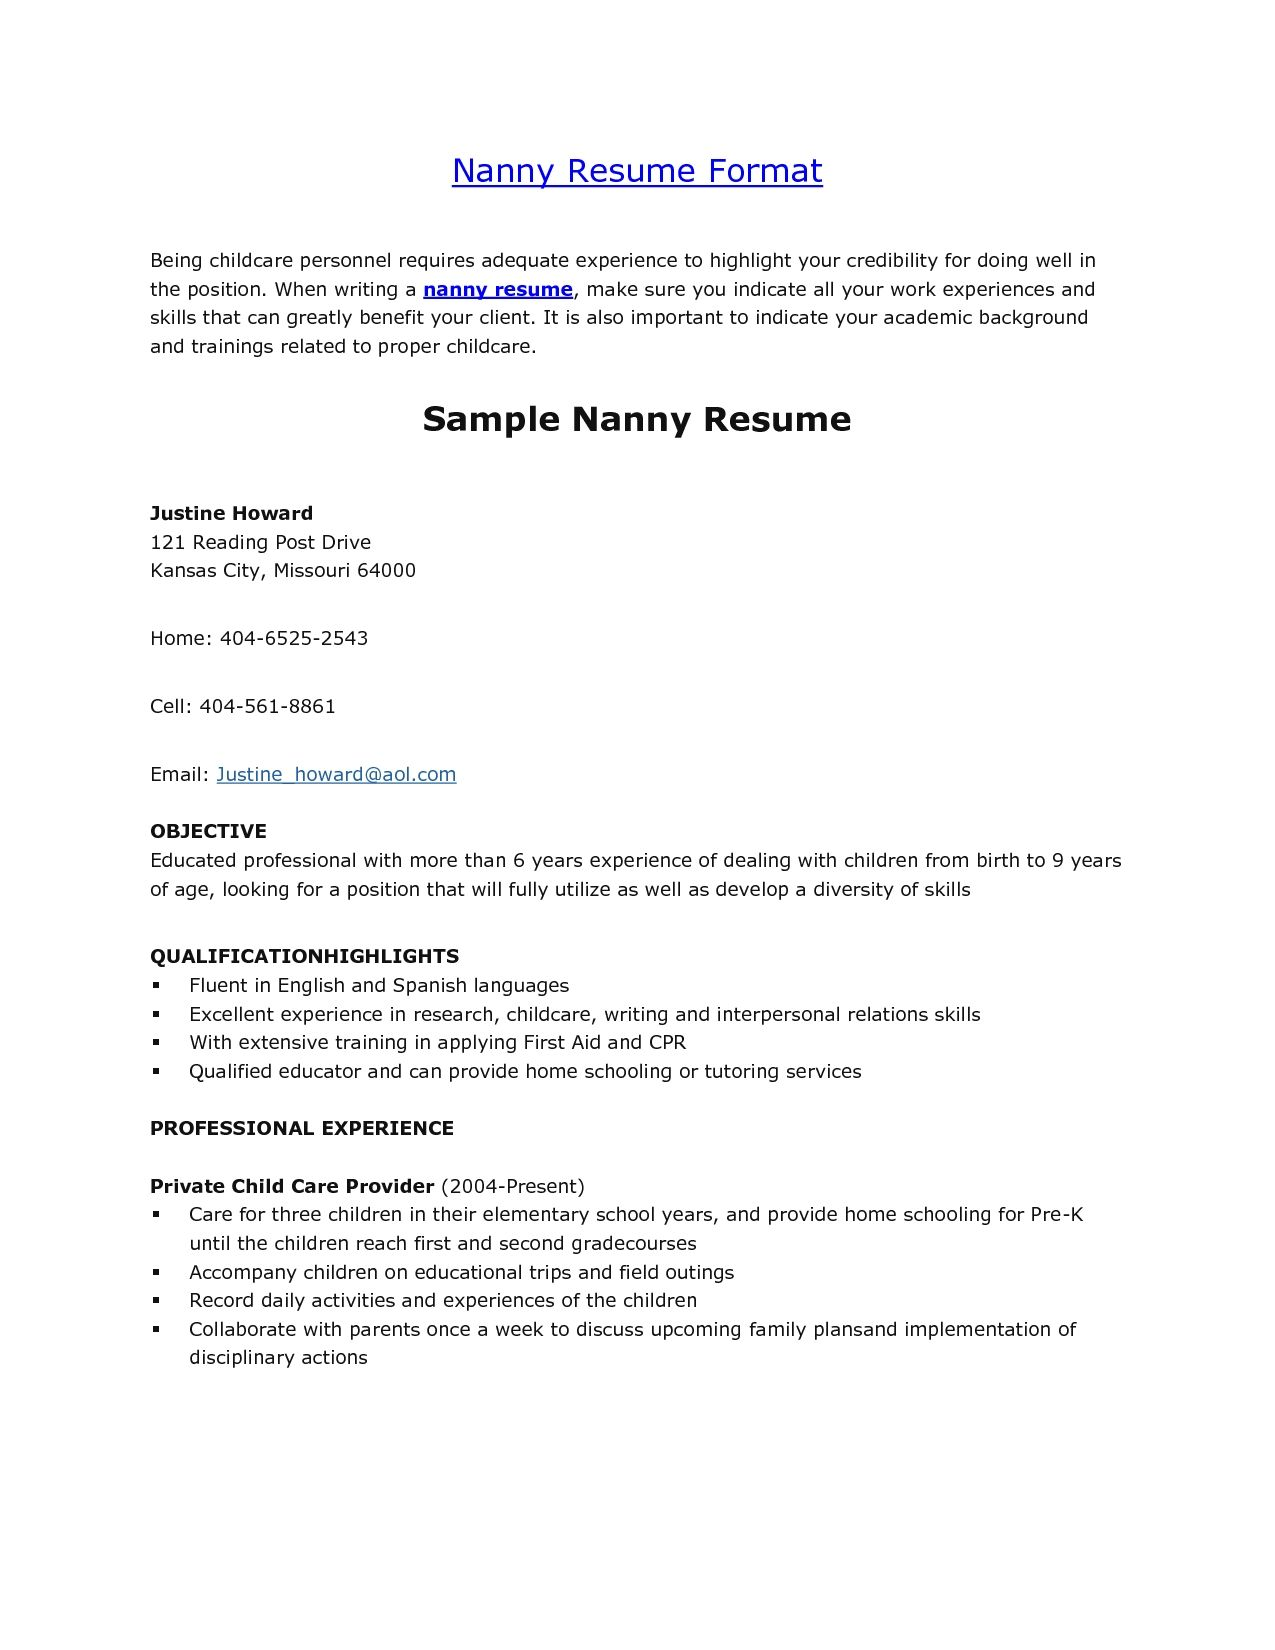 What To Put On A Cover Letter For Resume. Compares Linux Distributions  (major, Minor, Regional) In Simple Table Format. Information Such As Price,  Support, ...